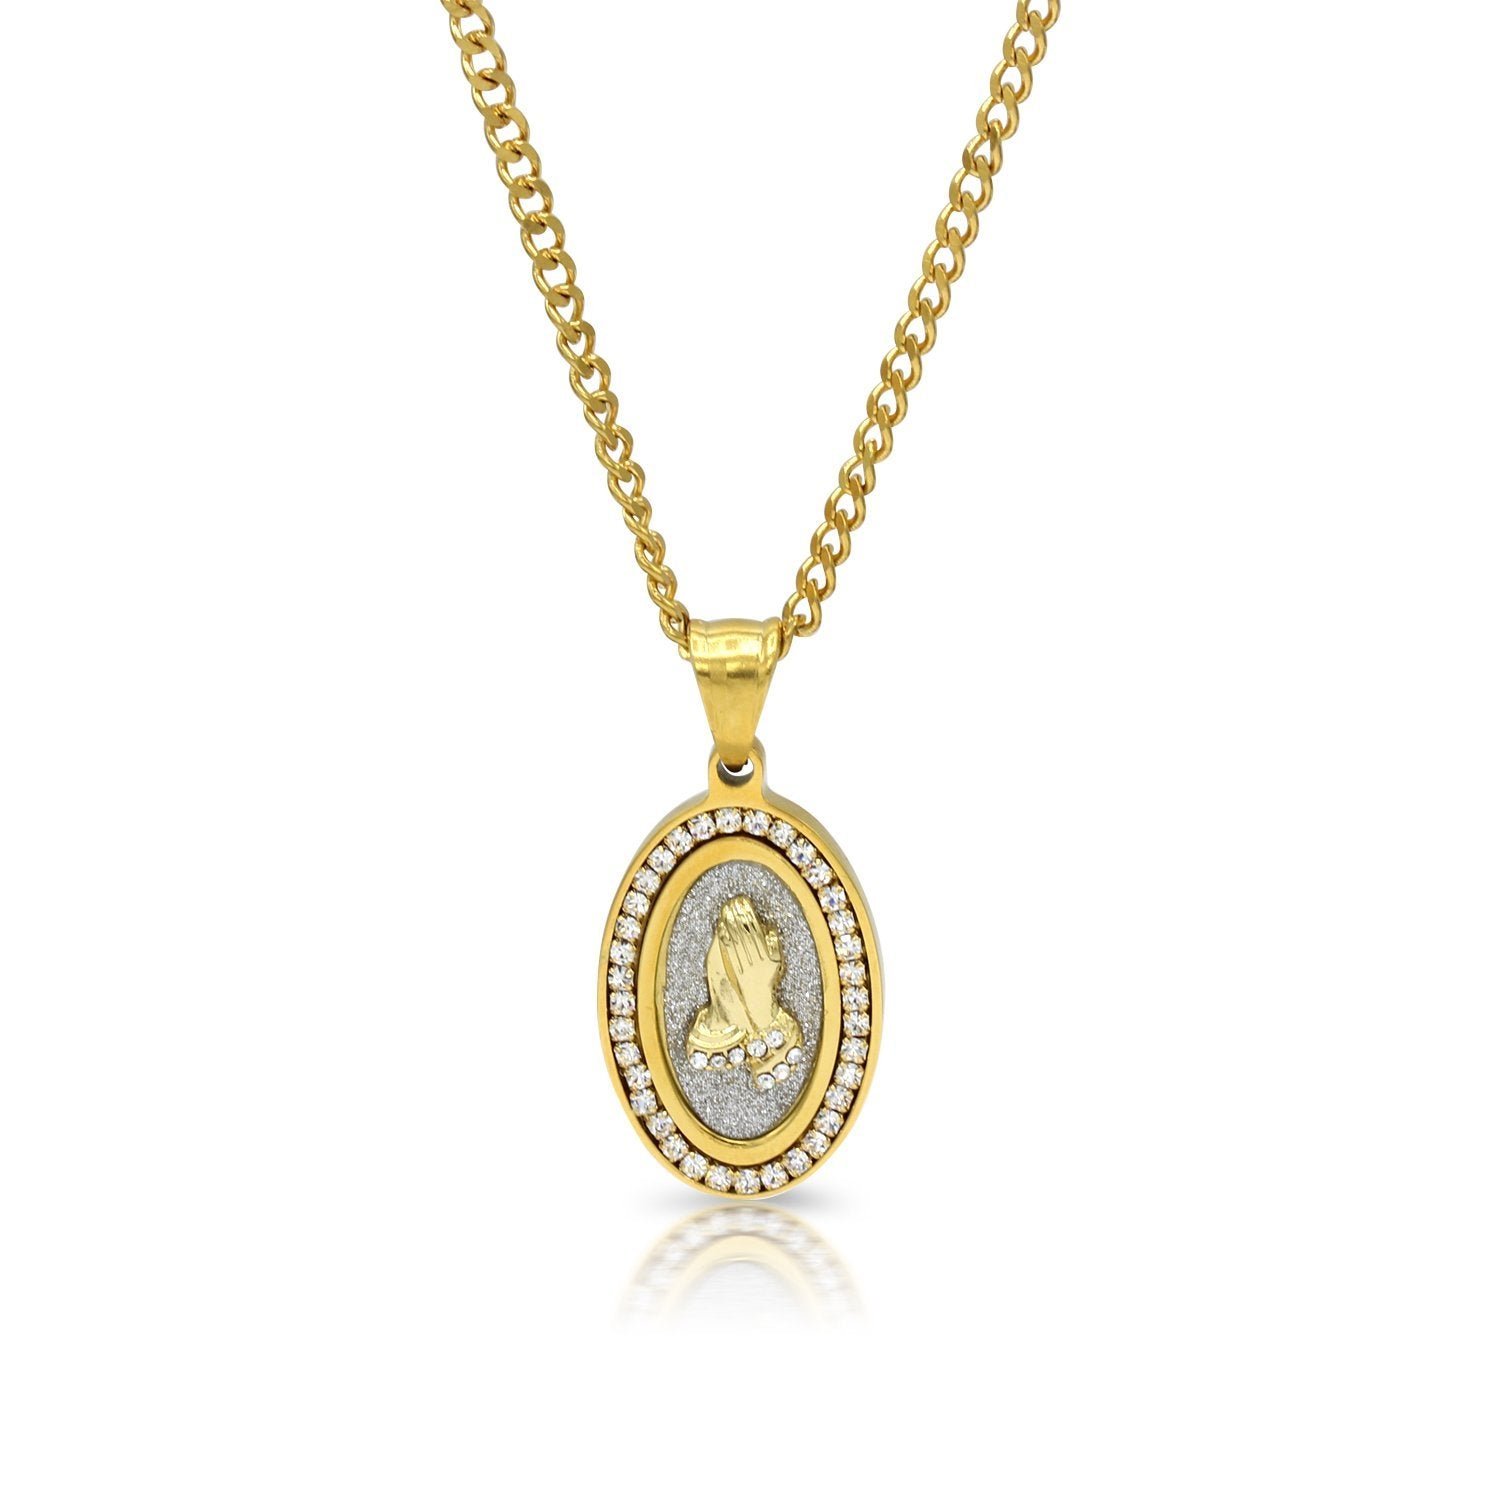 Iced Out Prayer Hands Oval Charm Necklace Stainless Steel Bling CZ